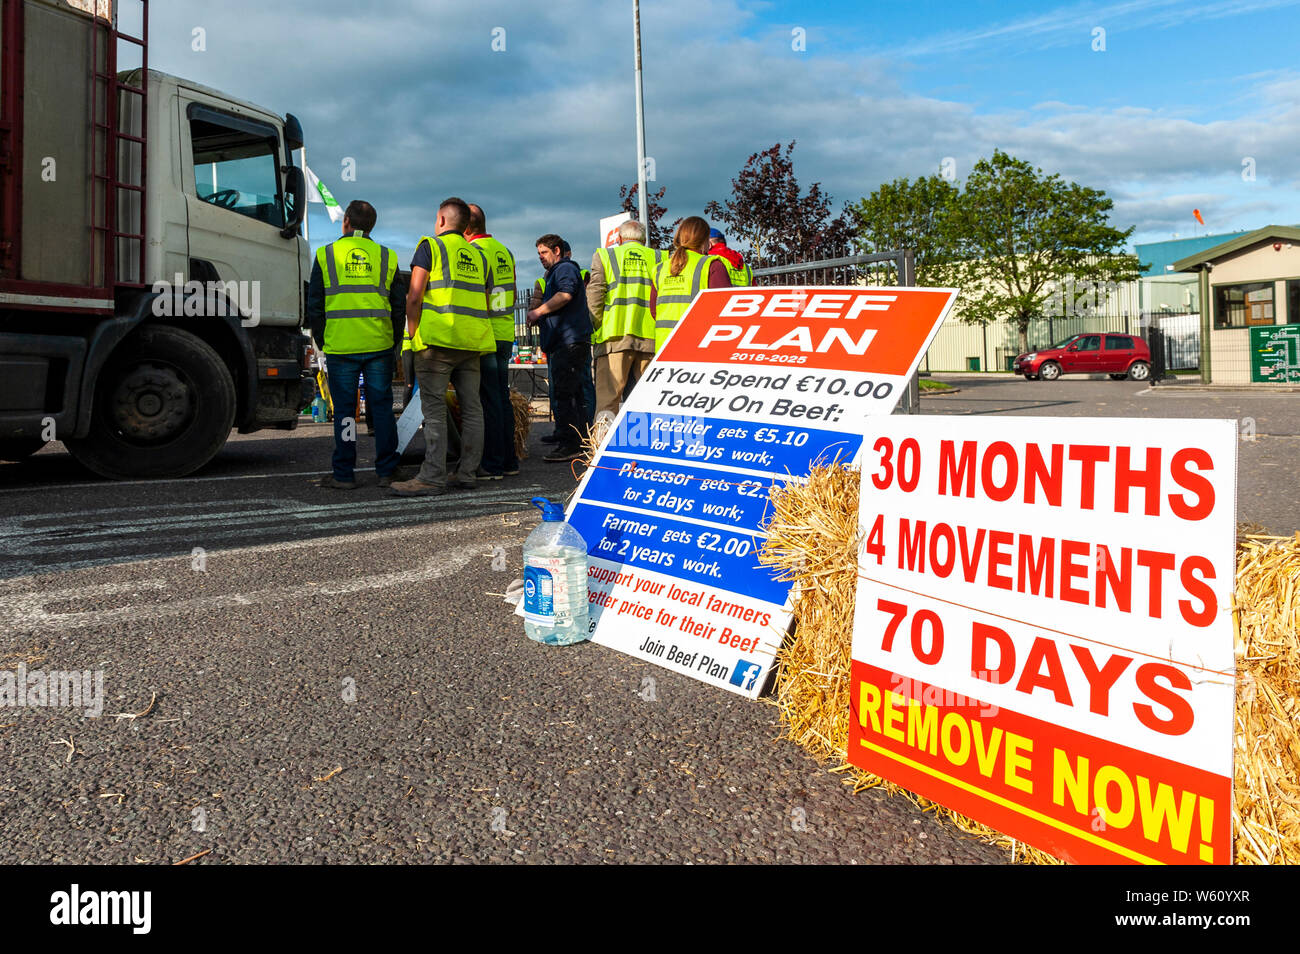 bandon-west-cork-ireland-30th-july-2019-angry-west-cork-farmers-continue-to-protest-outside-the-gates-of-abp-foods-the-slaughter-house-in-bandon-today-the-farmers-are-protesting-against-the-poor-prices-being-given-by-abp-foods-credit-andy-gibsonalamy-live-news-W60YXR.jpg